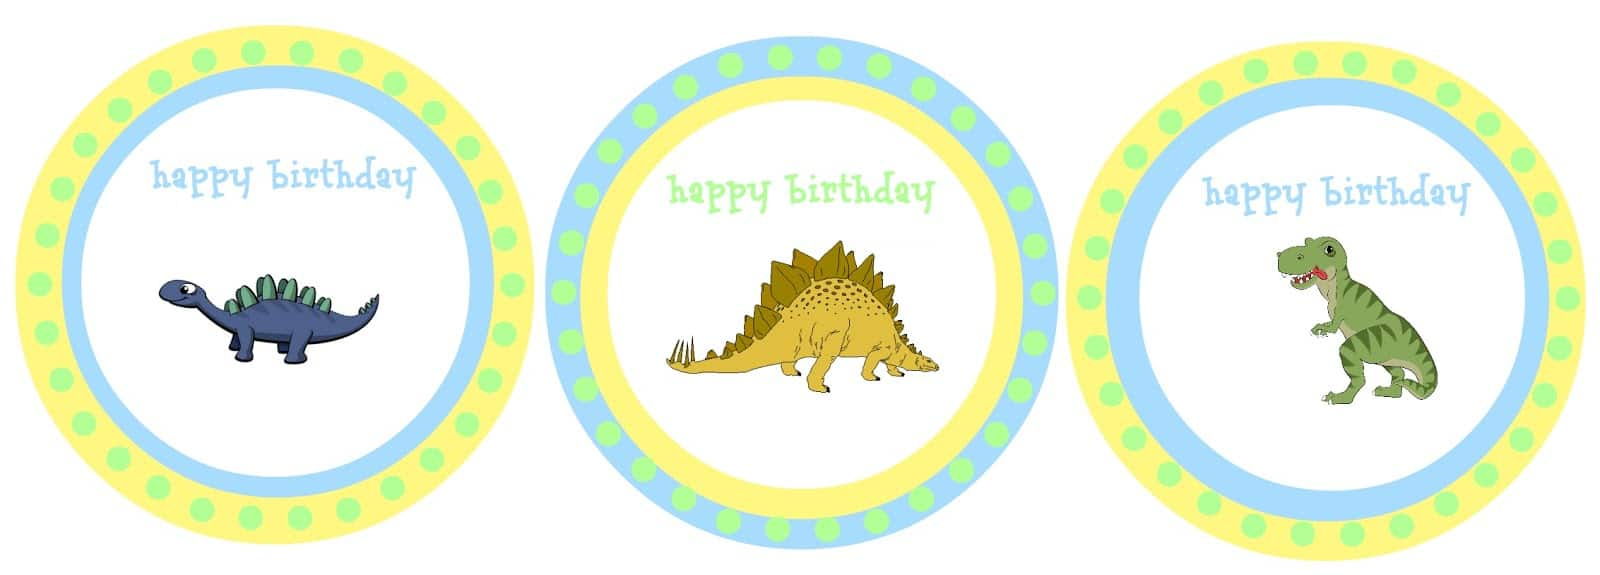 Party With Dinosaurs Dinosaur Themed Birthday Party